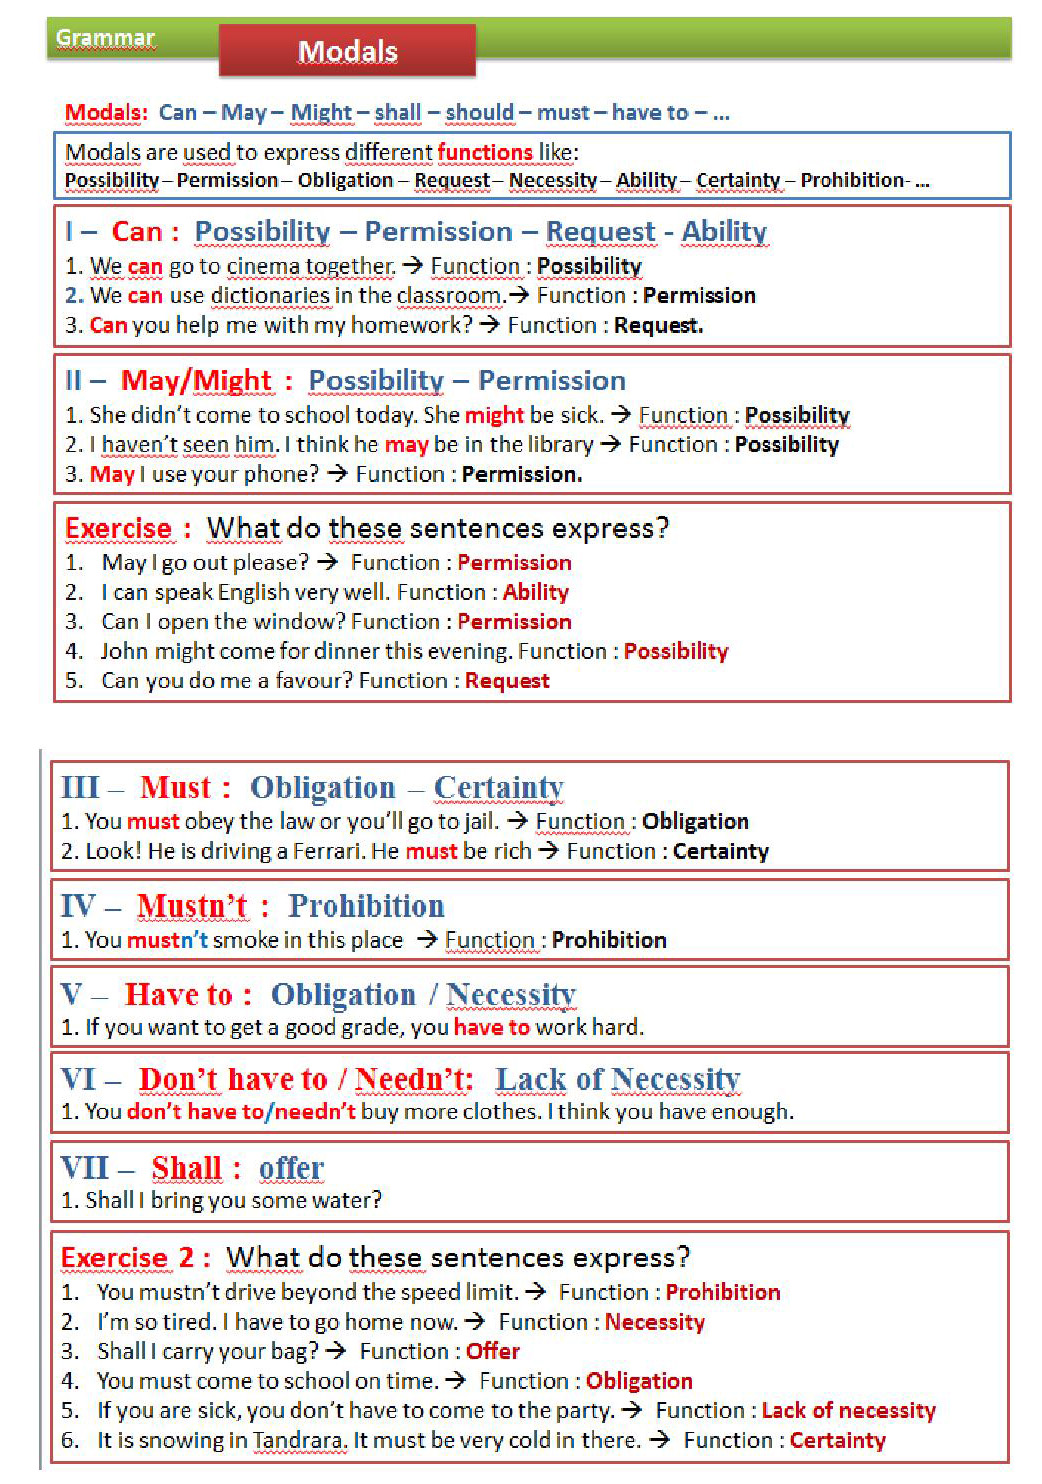 Bac 2 - All Grammar Lessons Review-page-015